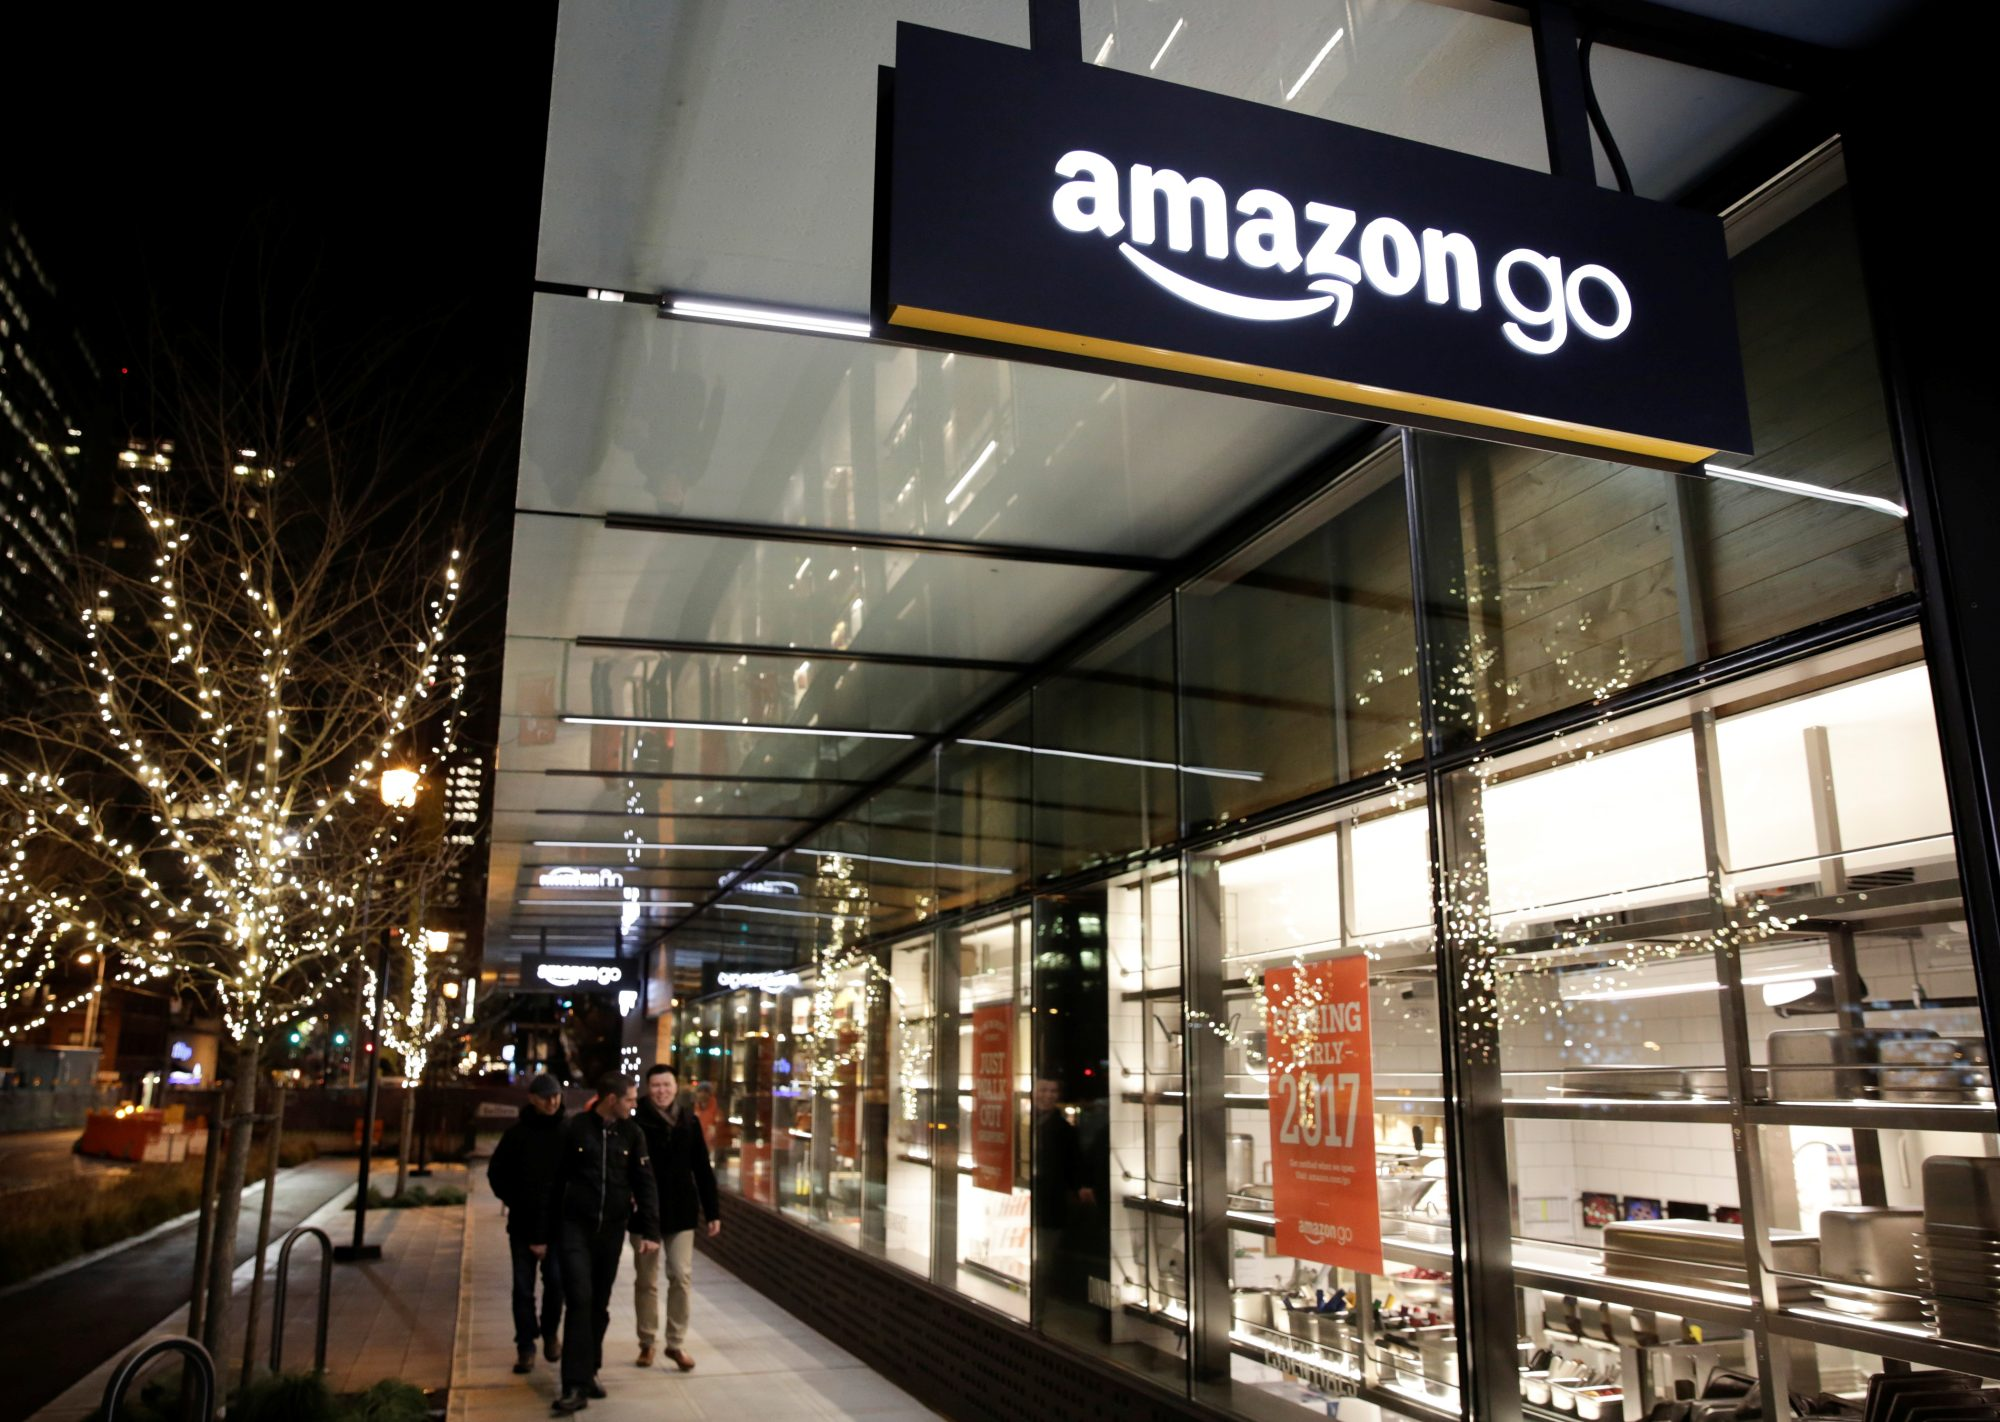 First Amazon Go Store Outside Seattle Opens in Chicago